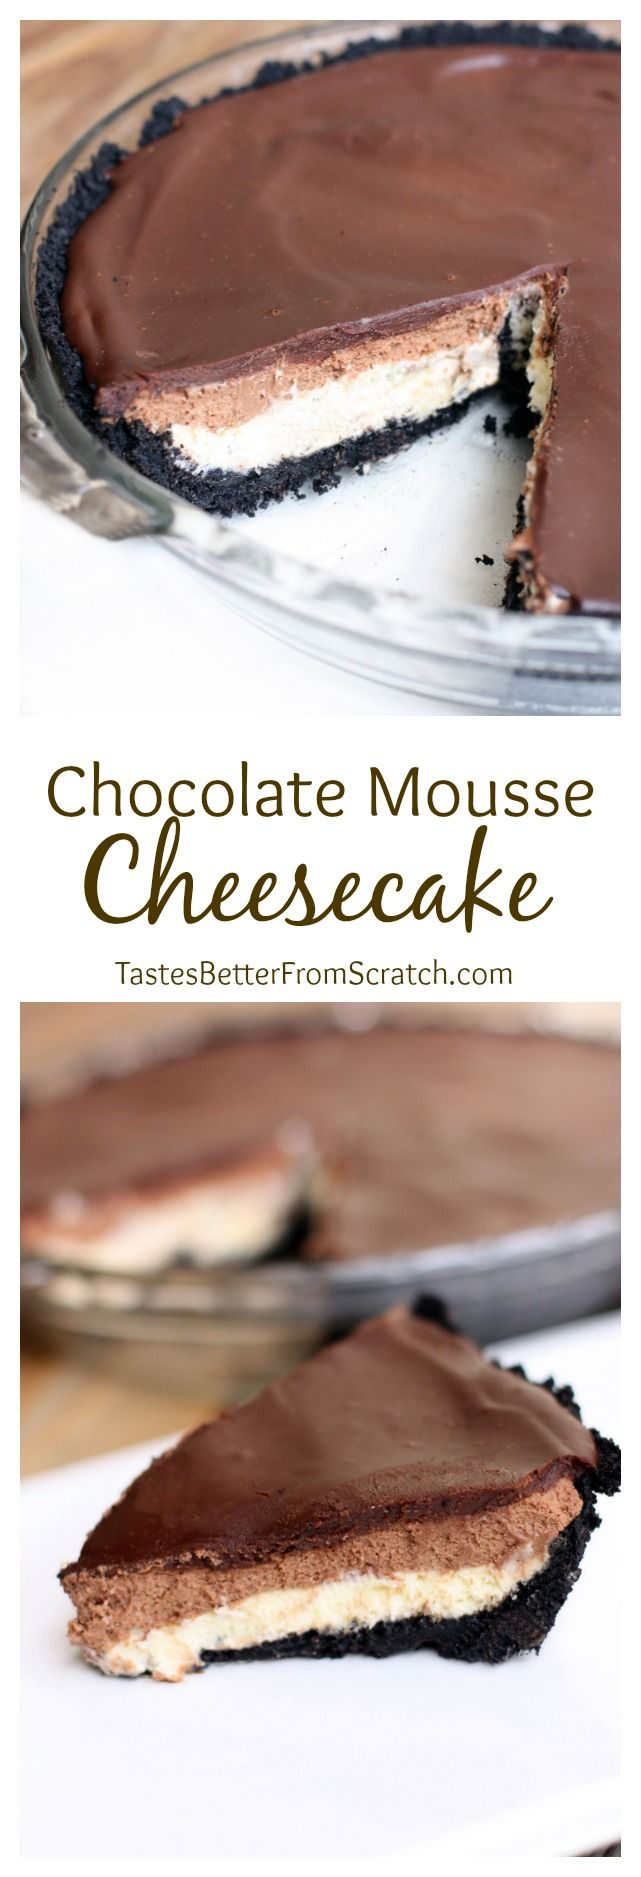 Chocolate Mousse Cheesecake on MyRecipeMagic.com